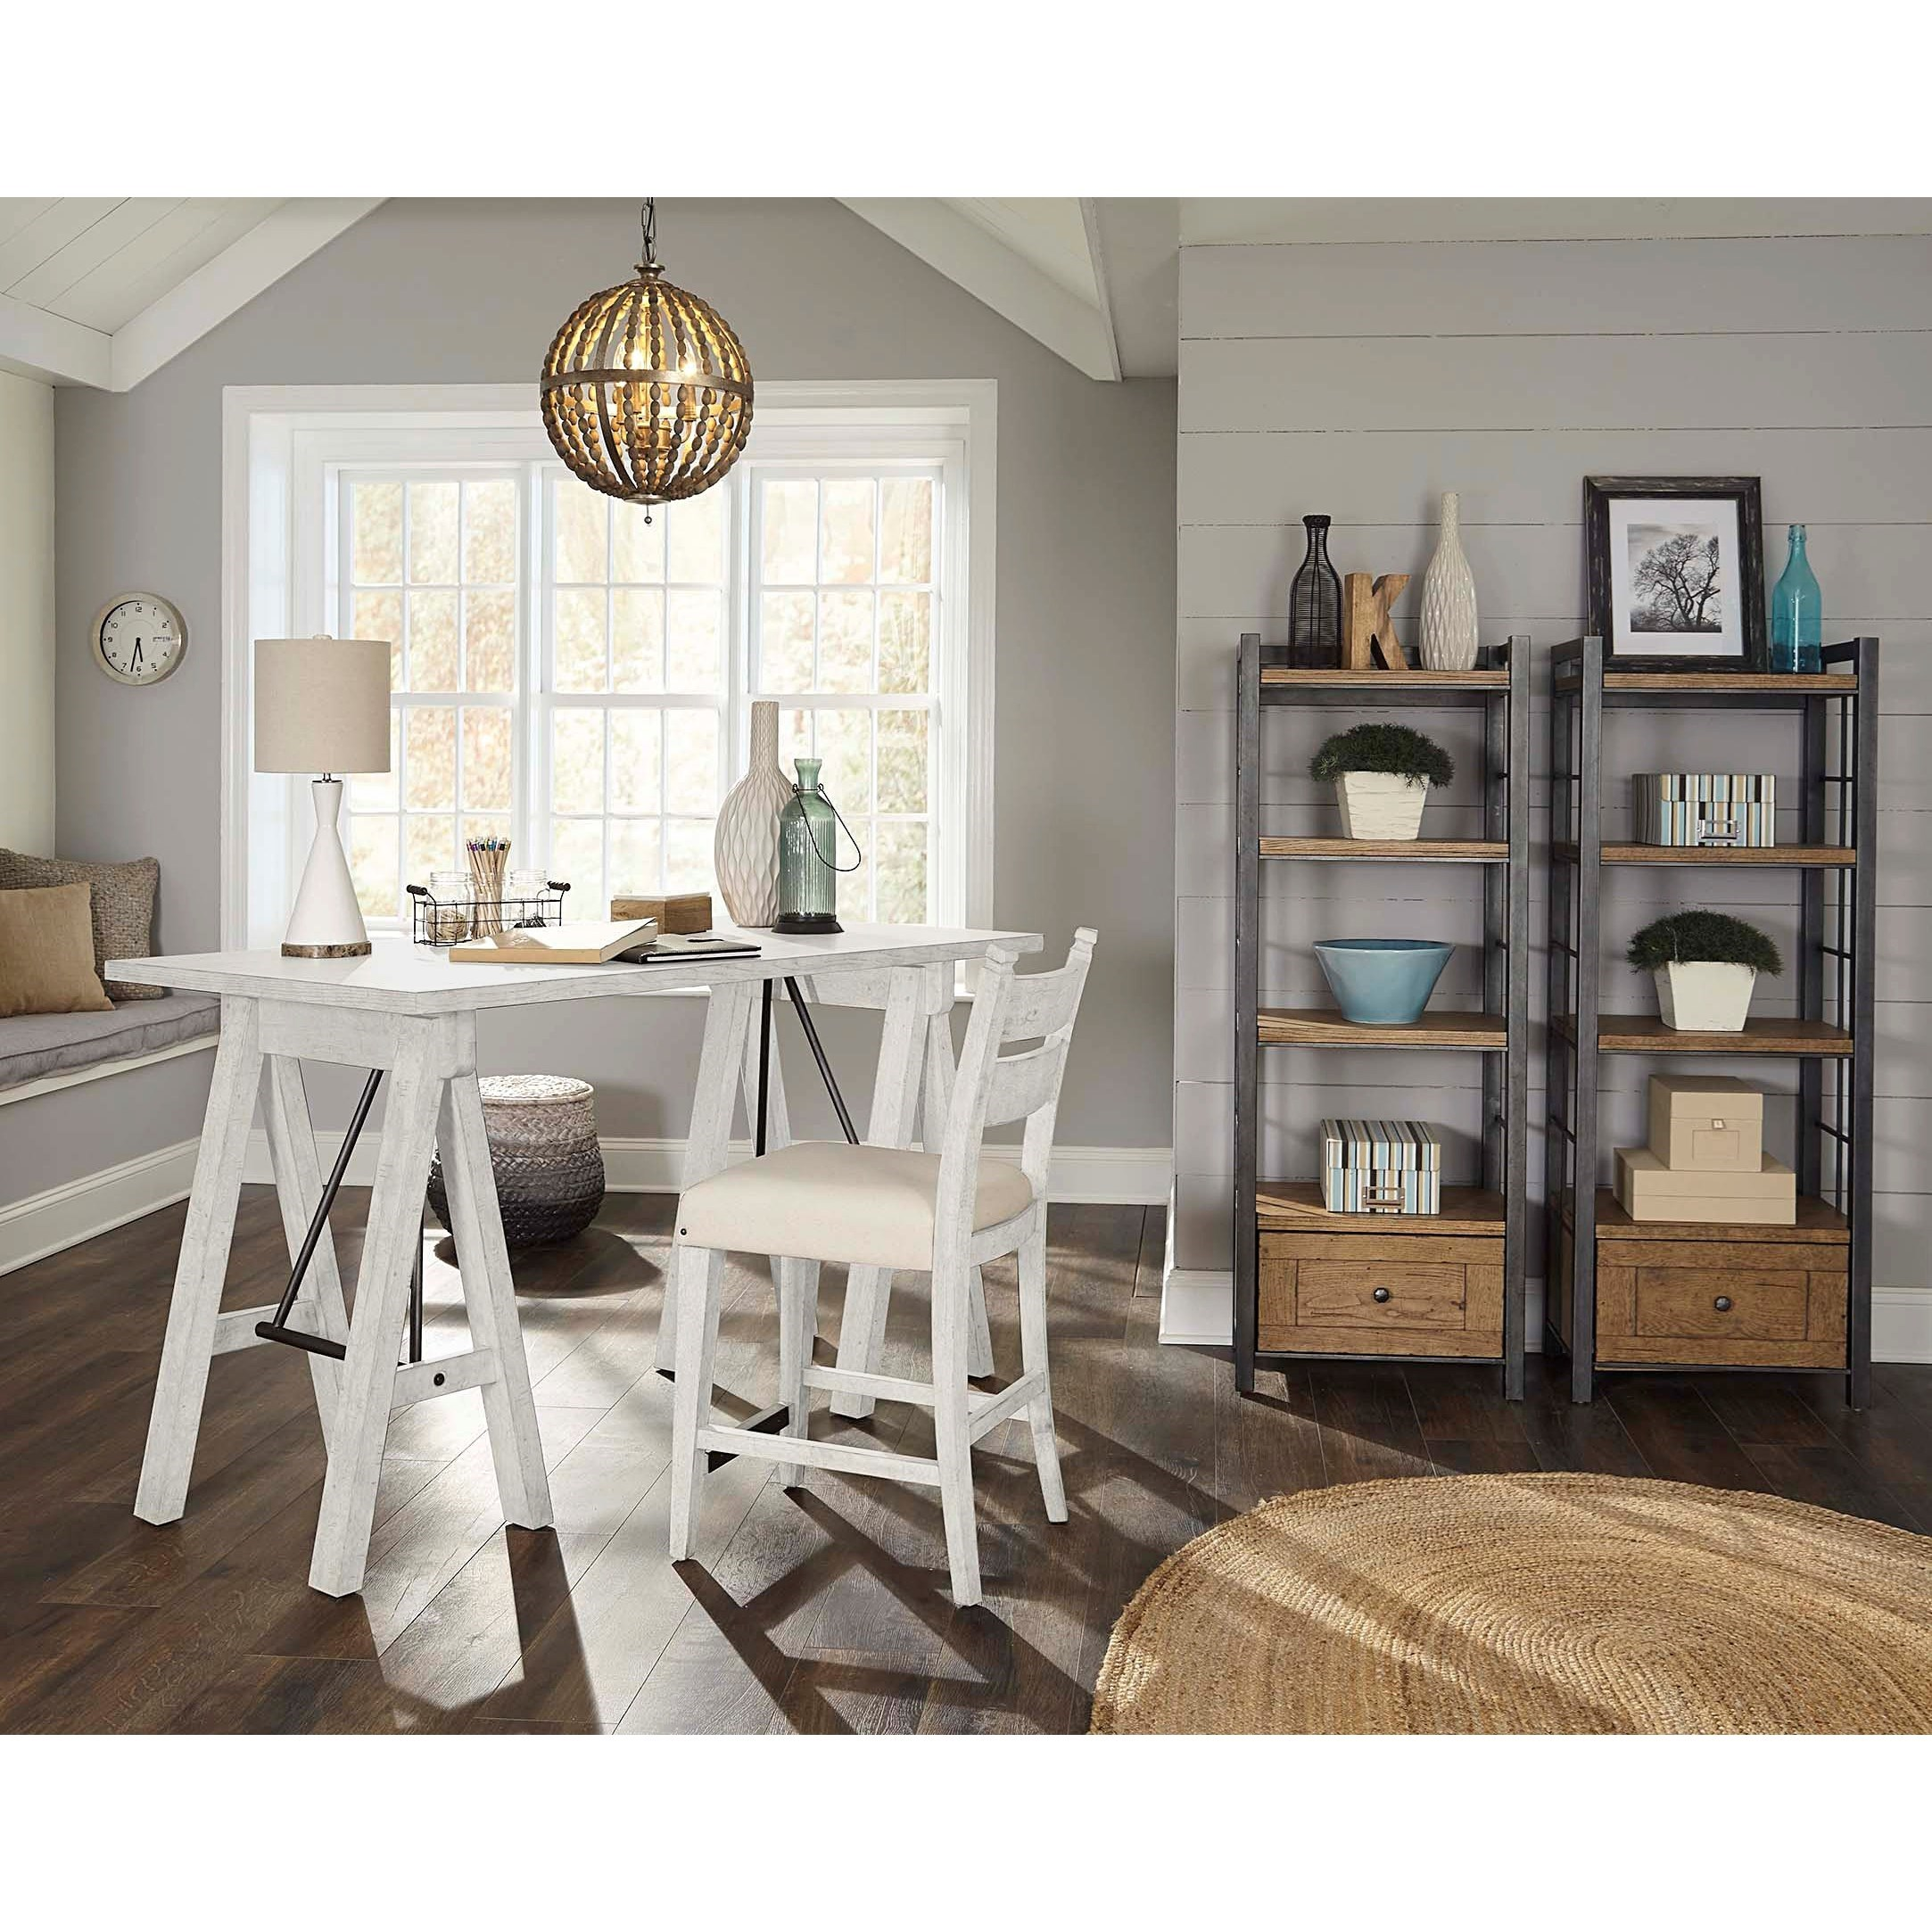 Trisha Yearwood Home Collection By Klaussner Coming Home